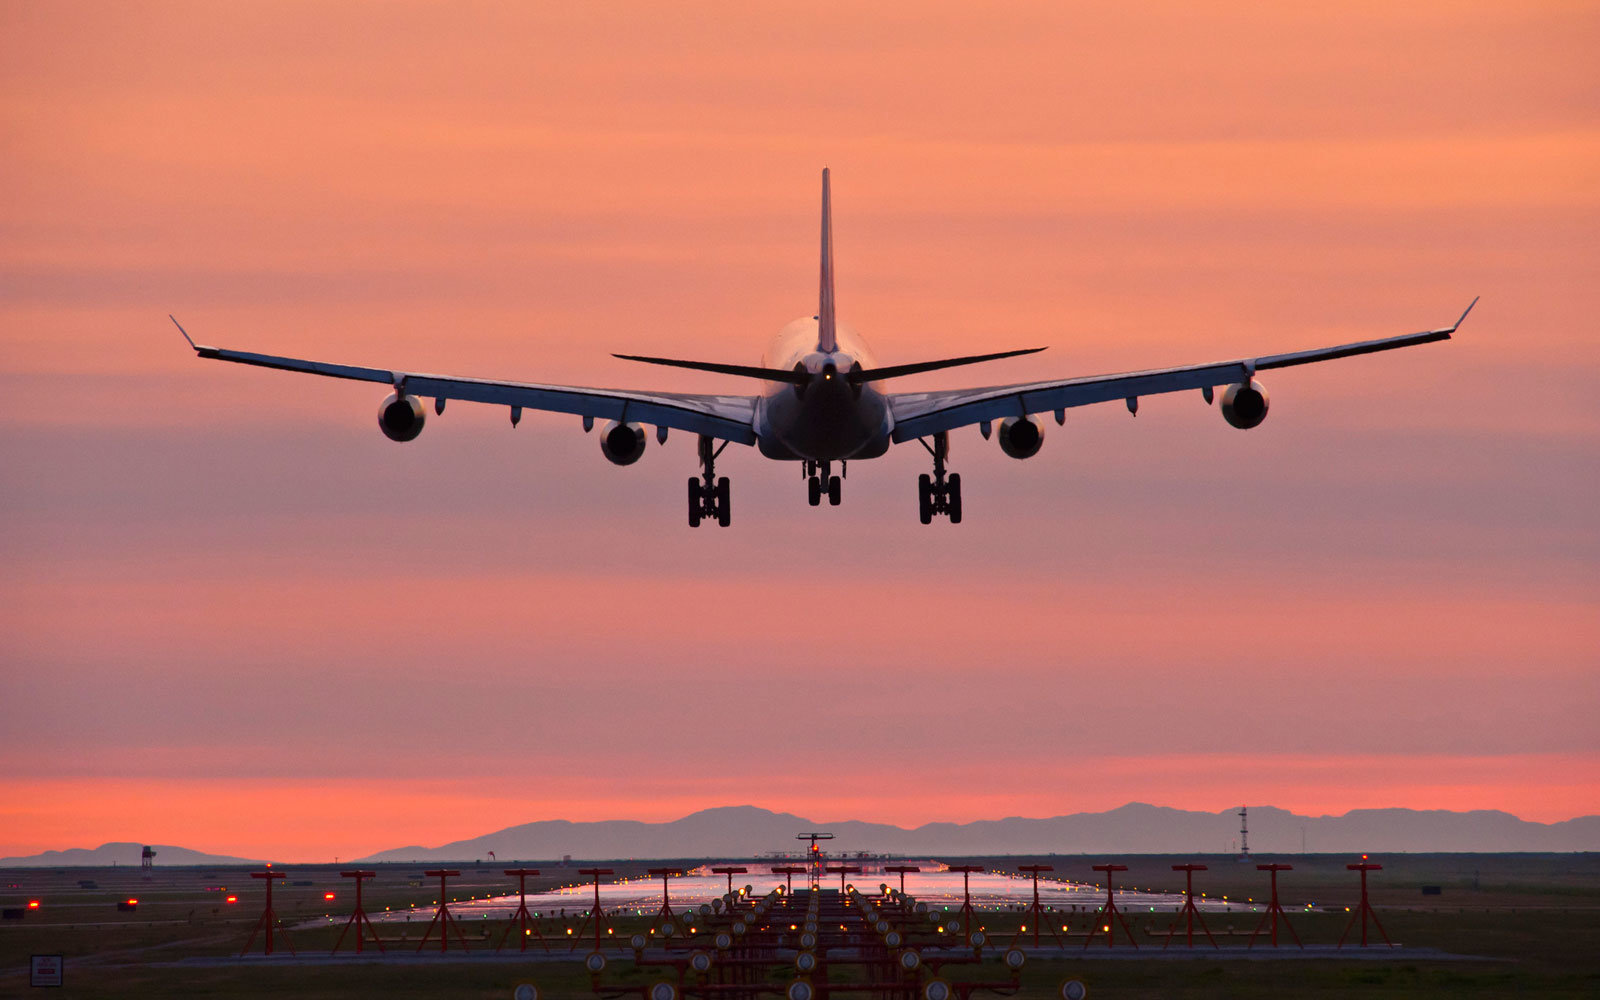 A plane landing on the runway.